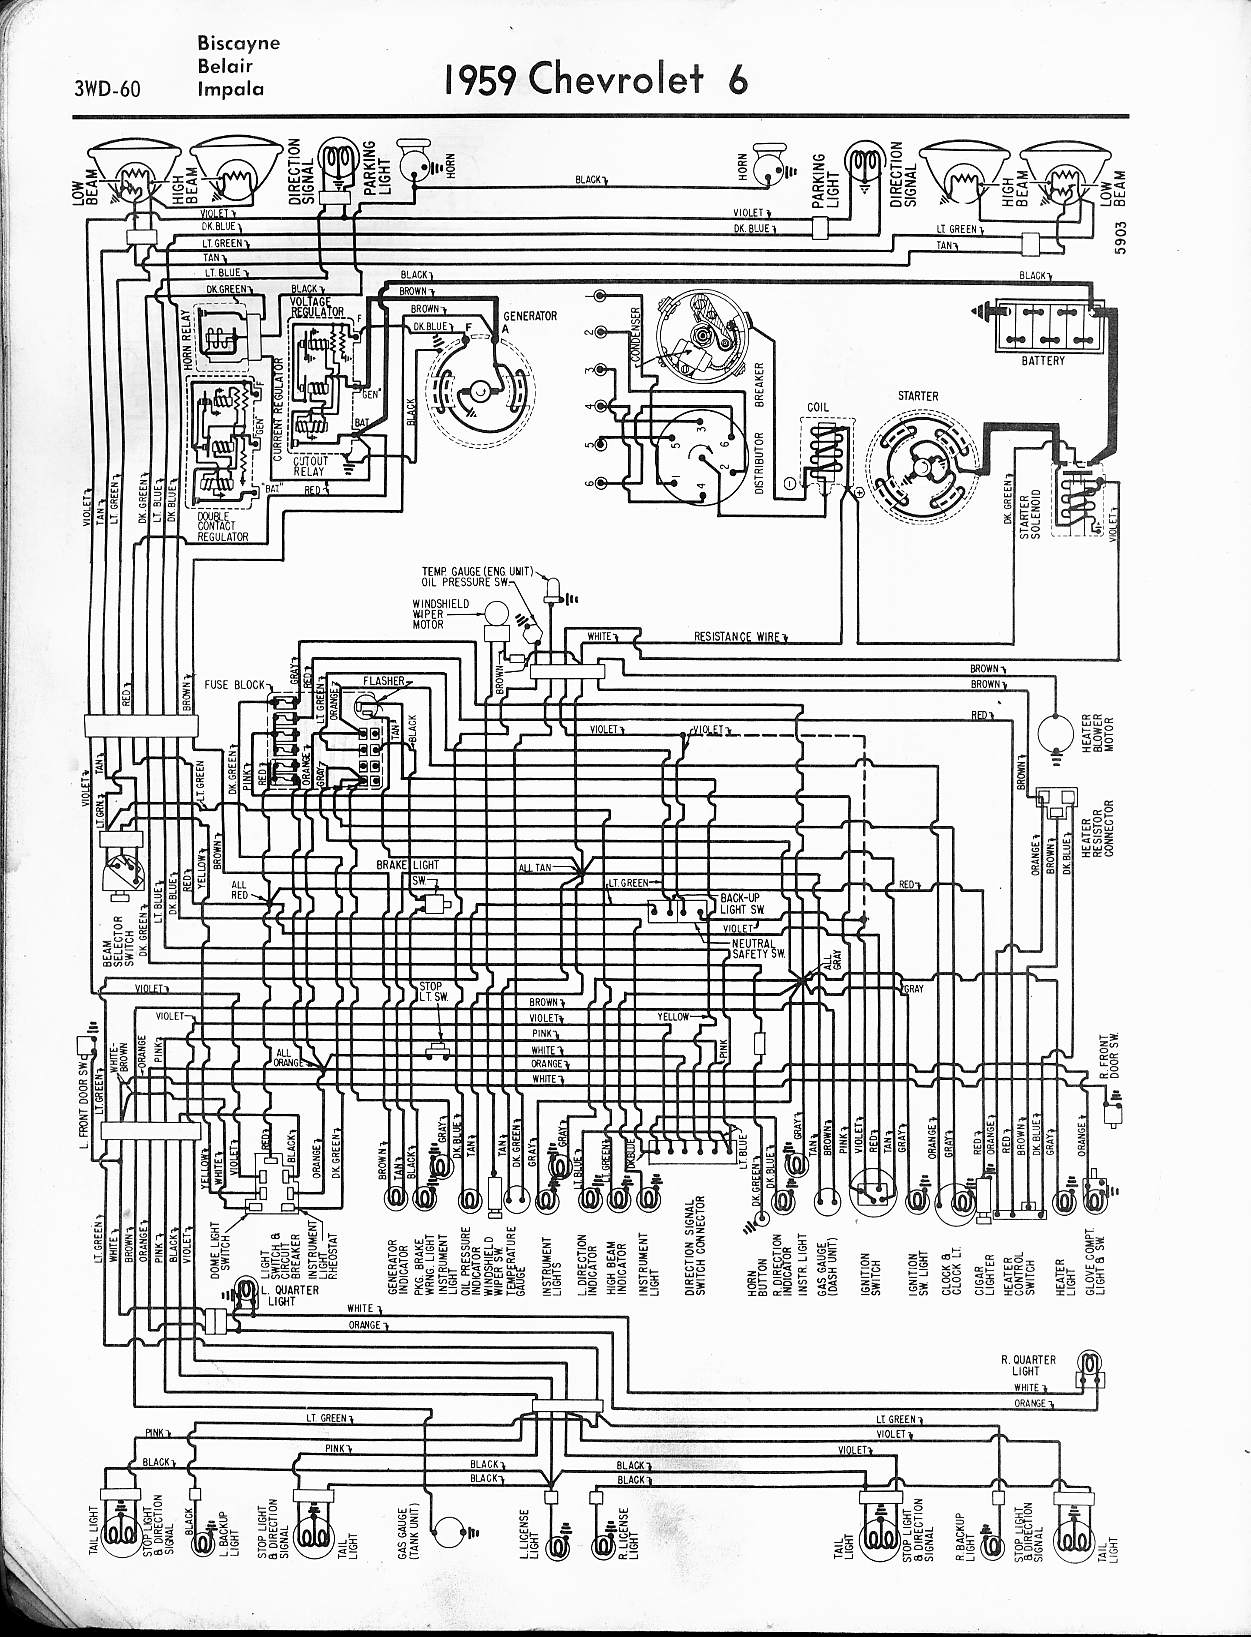 1959 Bel Air Wiring Diagram Opinions About Whirlpool Gas Range Sf265ltxs2 57 65 Chevy Diagrams Rh Oldcarmanualproject Com 1958 1963